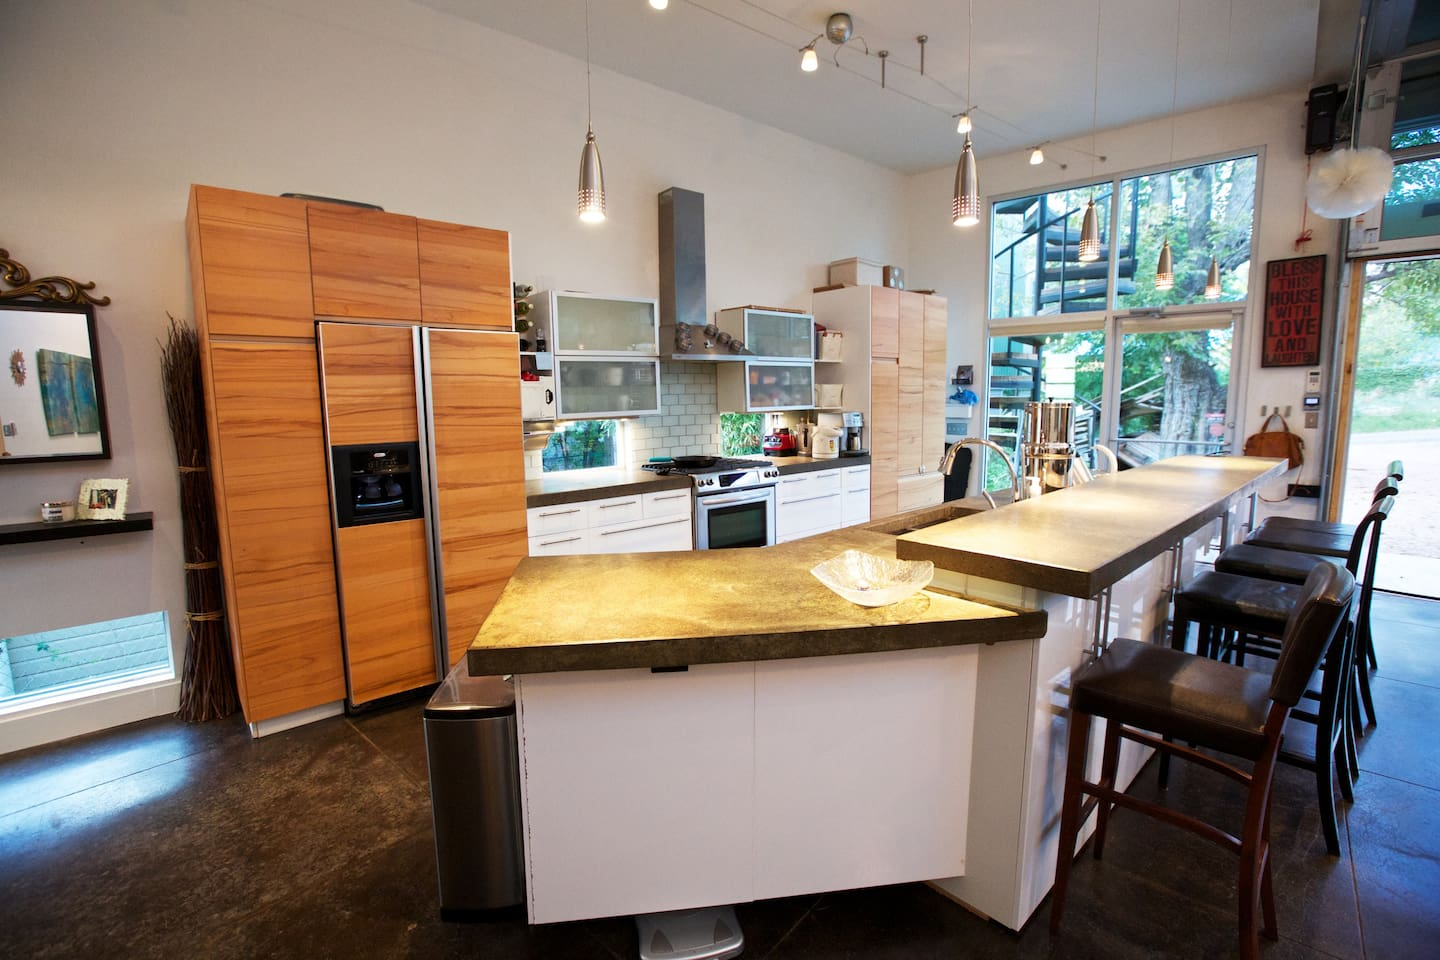 Galley style kitchen, with automatic espresso maker